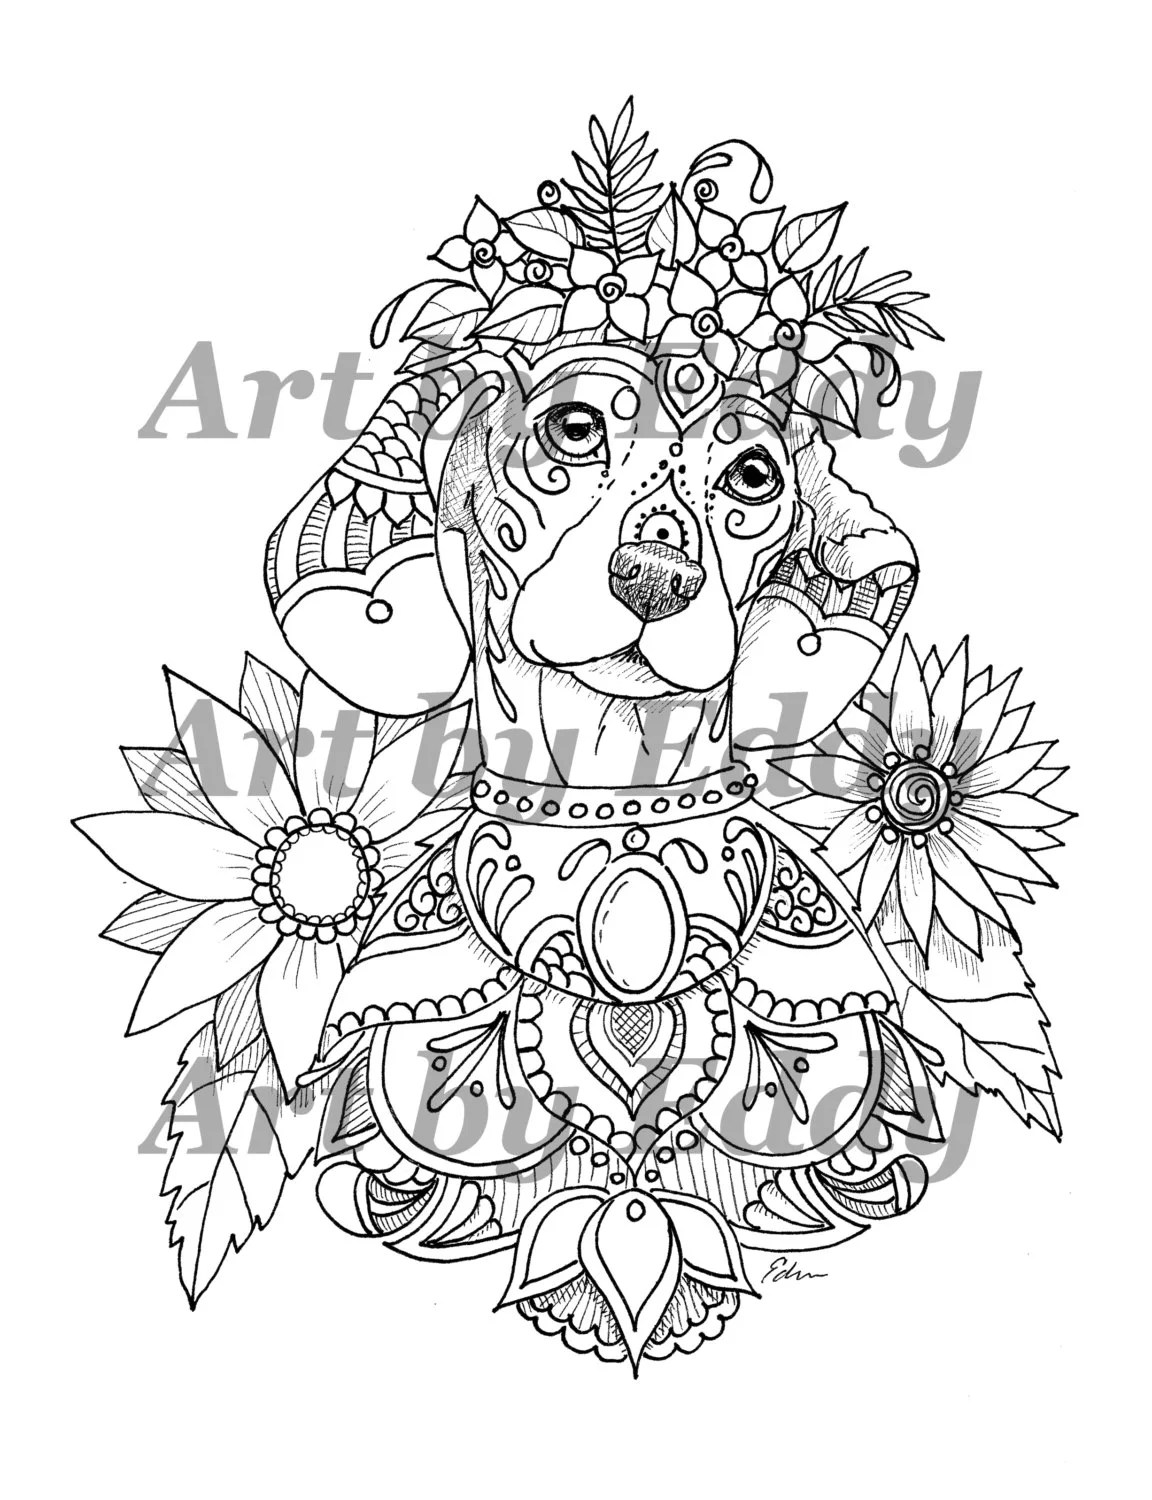 art of dachshund coloring book volume no 1 physical by artbyeddy